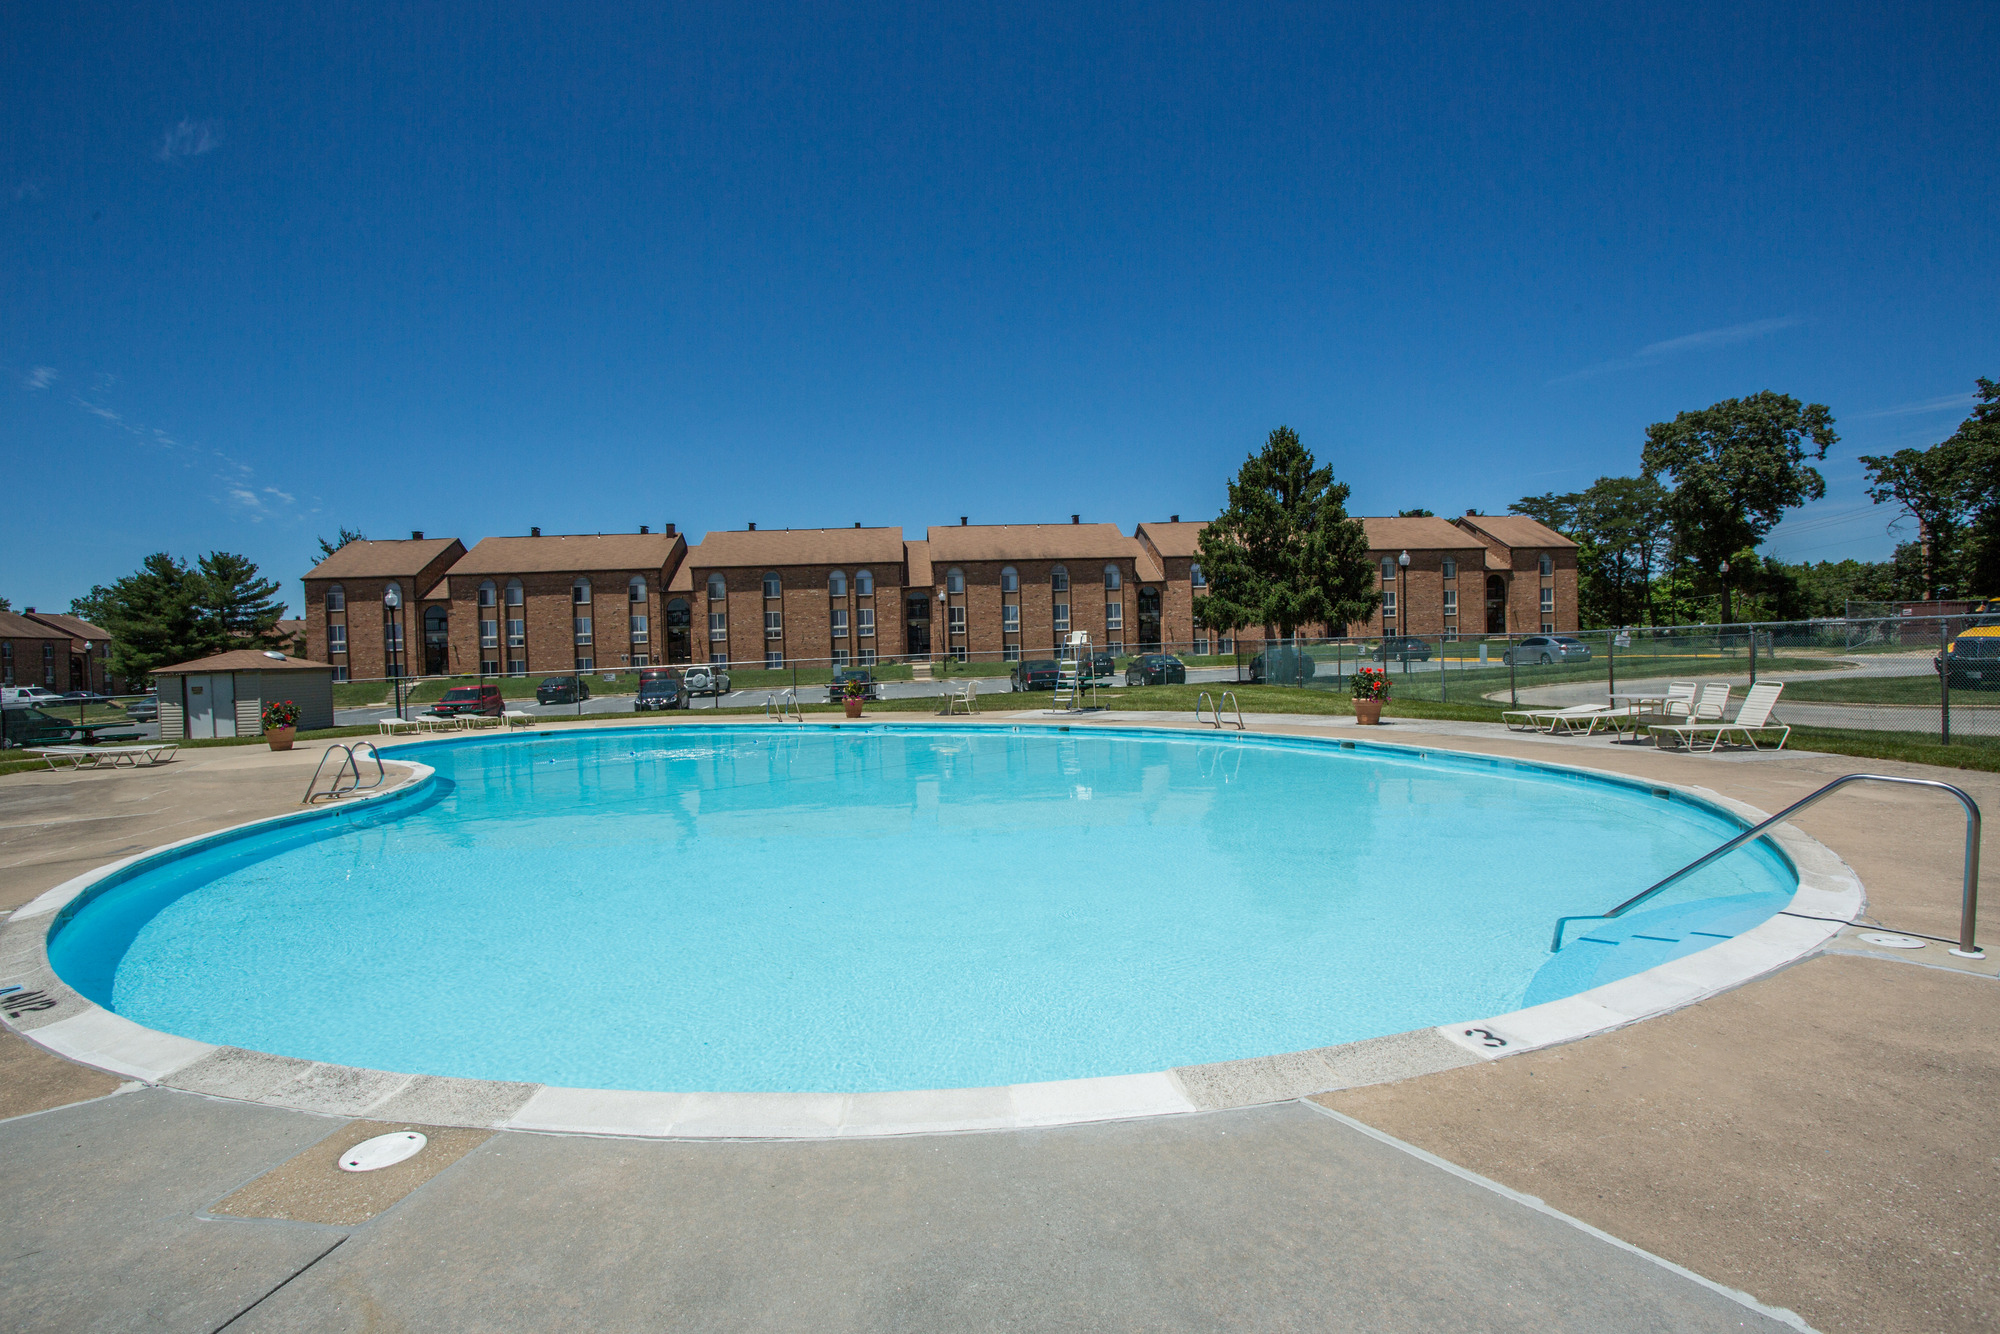 Tuscany Gardens Apartments in Windsor Mill, MD - Swimming Pool